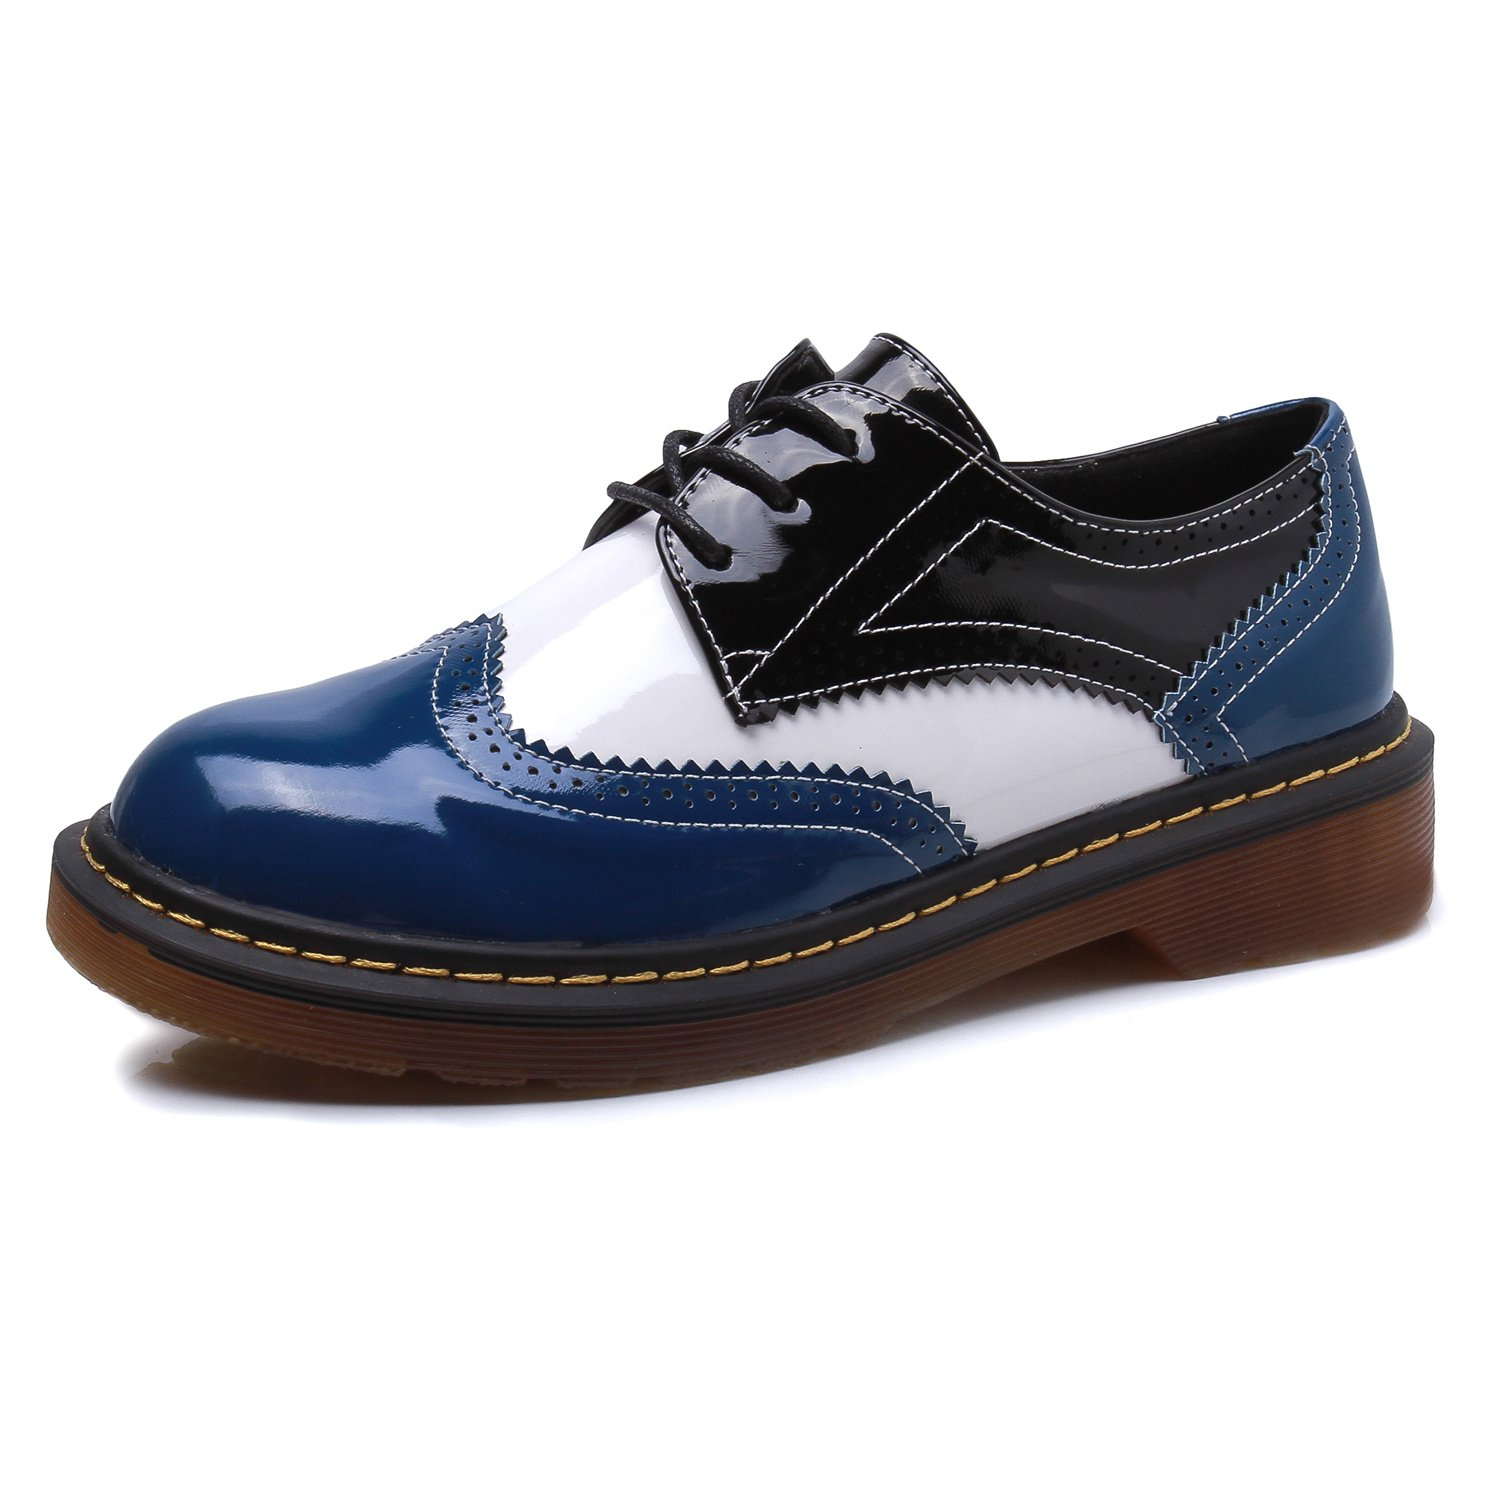 Smilun Chaussures Chaussures Femme 19957 Femme Derby Assortie Varié Multicolore Classic Blue 68f5490 - conorscully.space